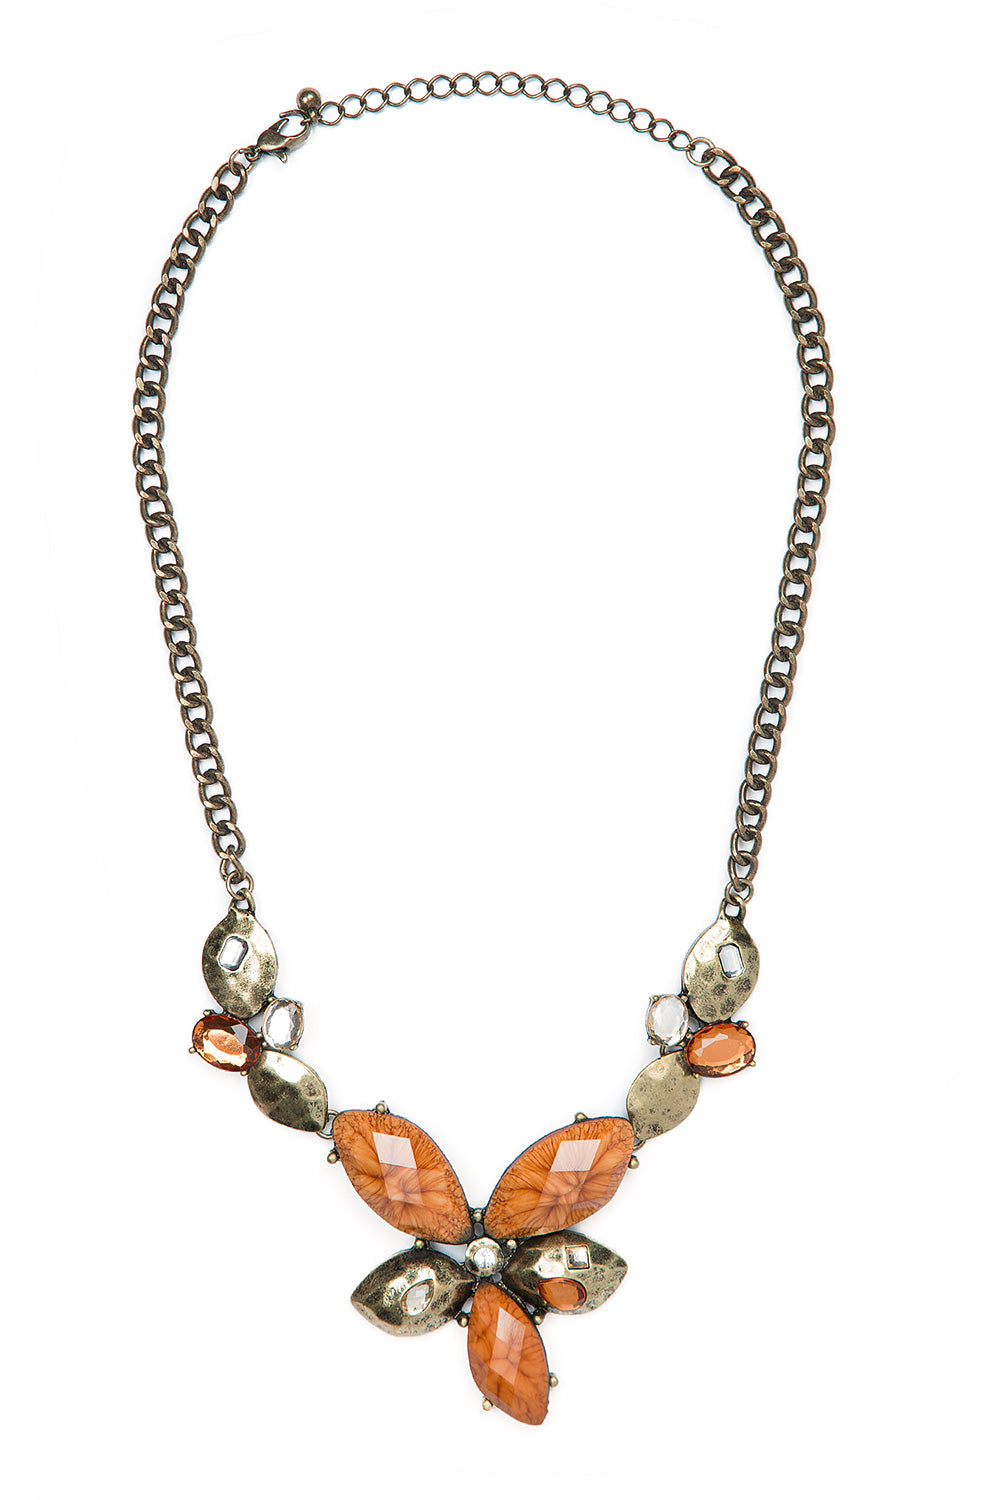 Type 3 Autumn Amber Necklace